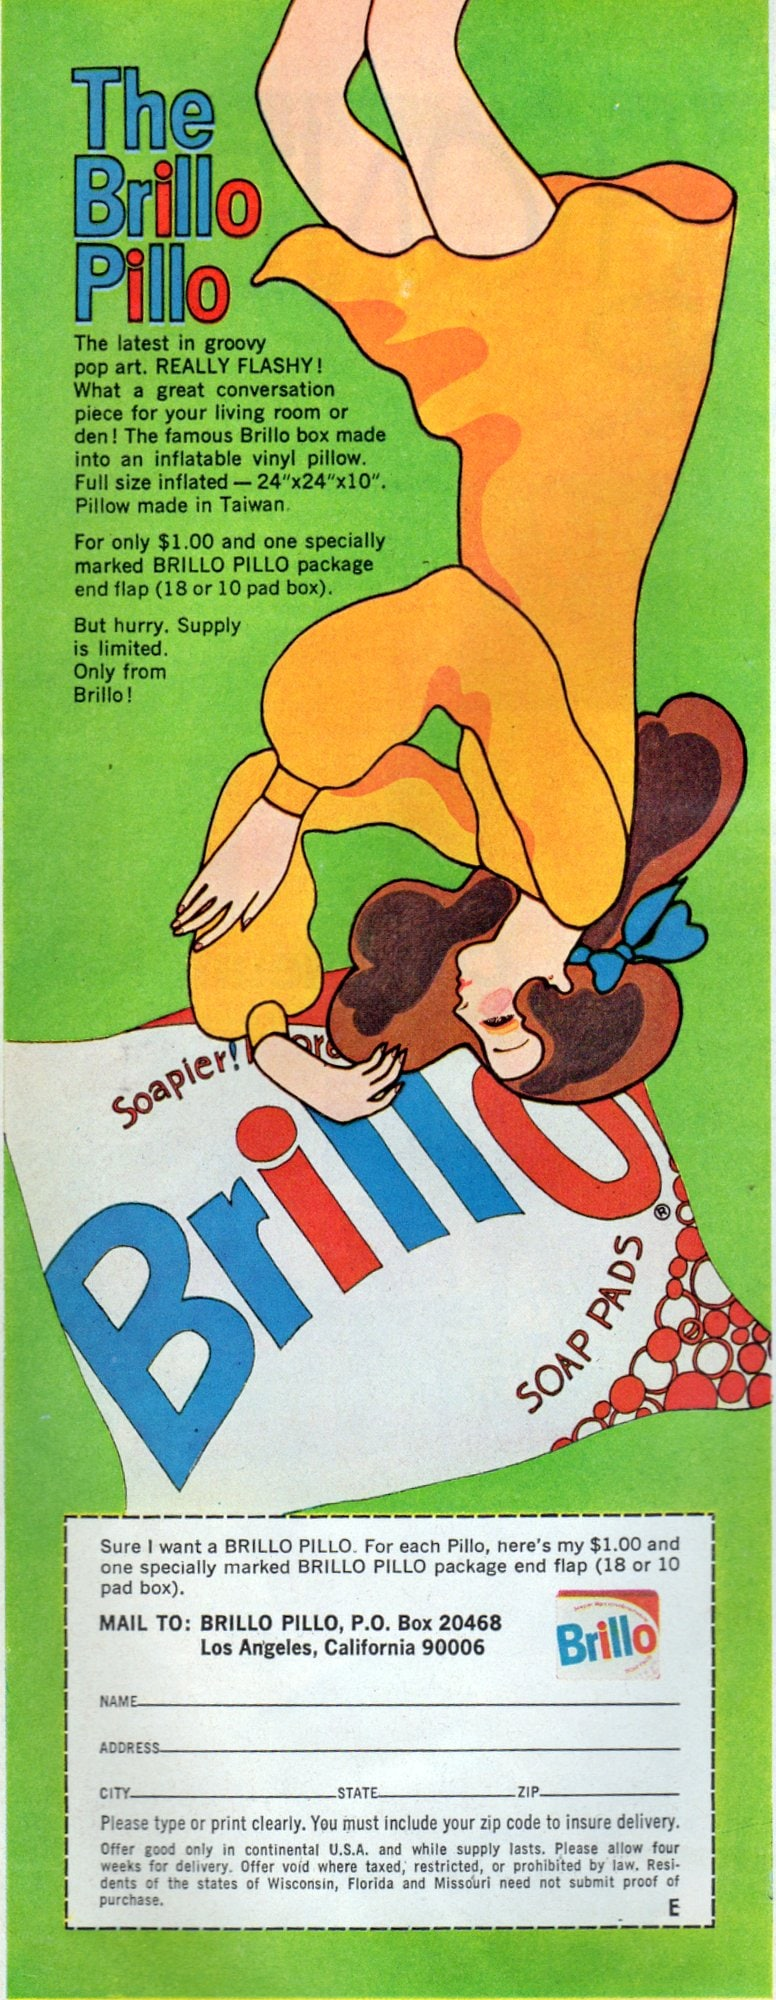 Brillo pillow, the latest in groovy pop art. Really flashy(1968)